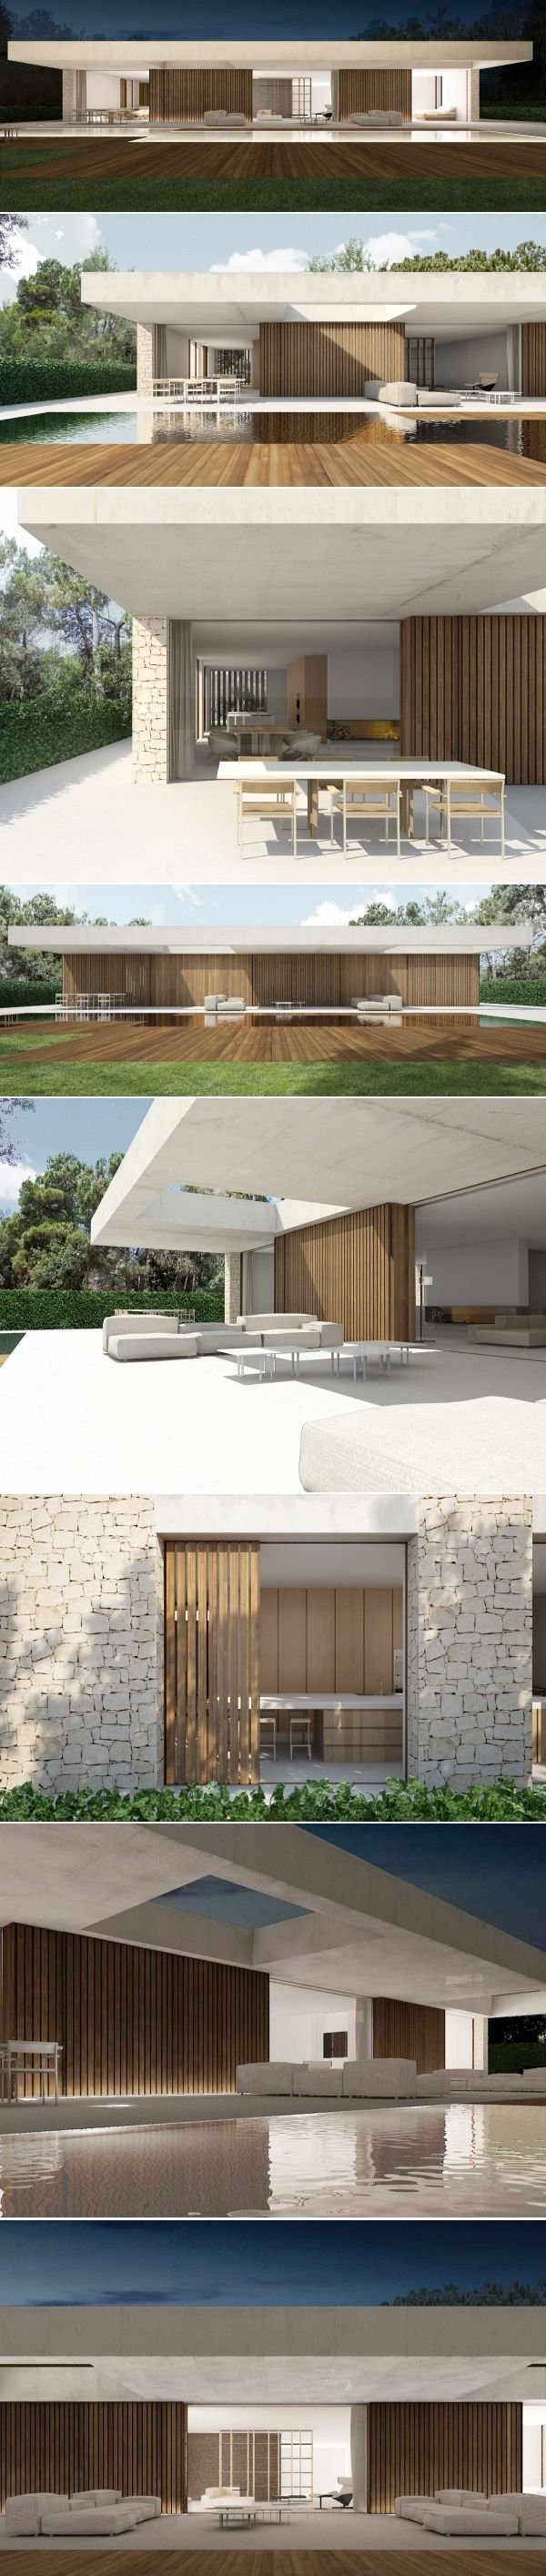 Single storey home flat roof future vertical expansion 6 social side - House In La Ca Ada Spain By Ramon Esteve